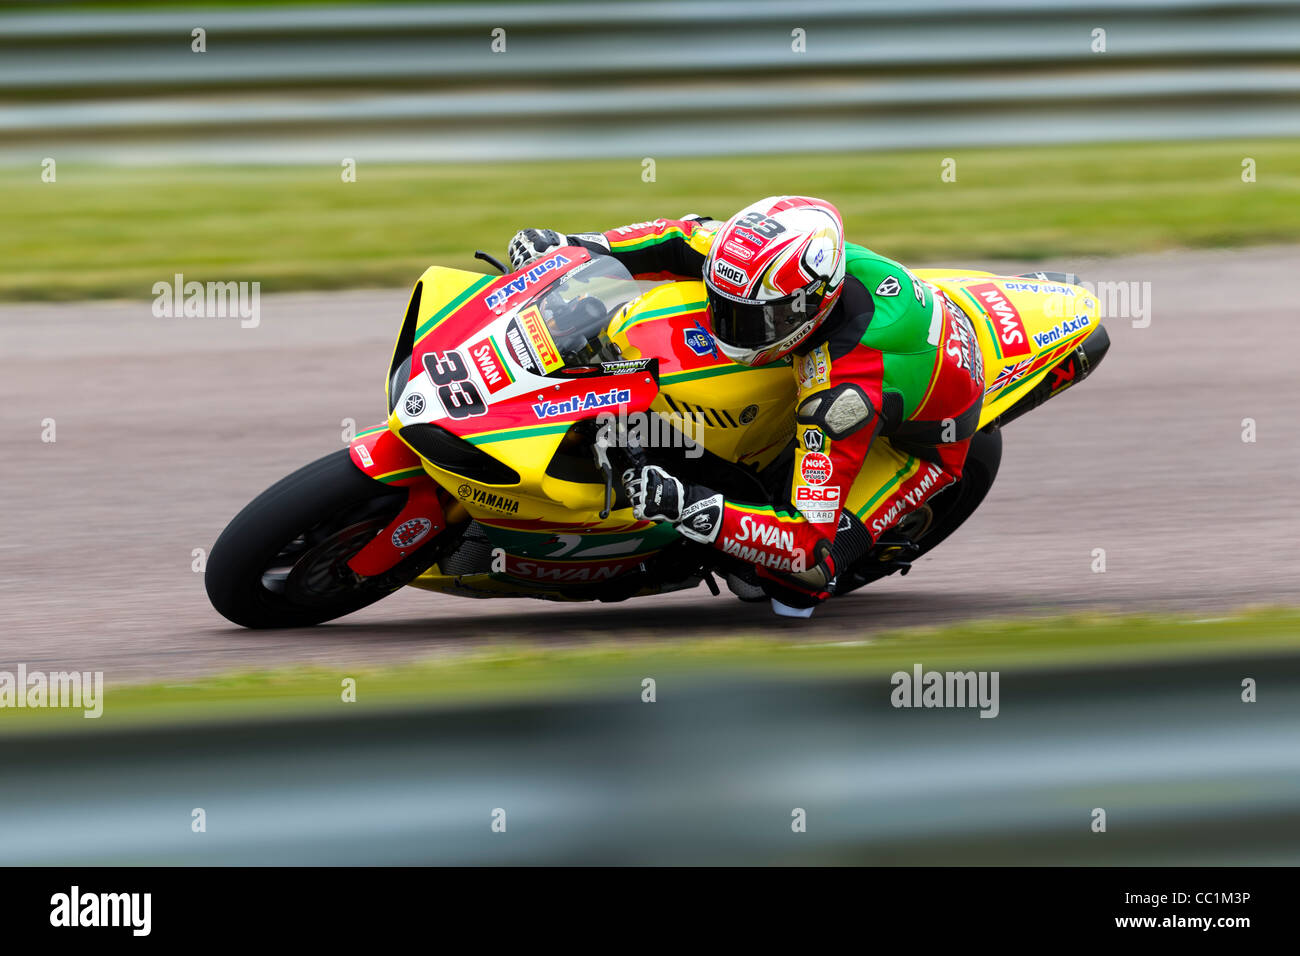 46226530 British superbike rider Tommy Hill riding a Yamaha YZF- R1 for the Swan  Yamaha superbike